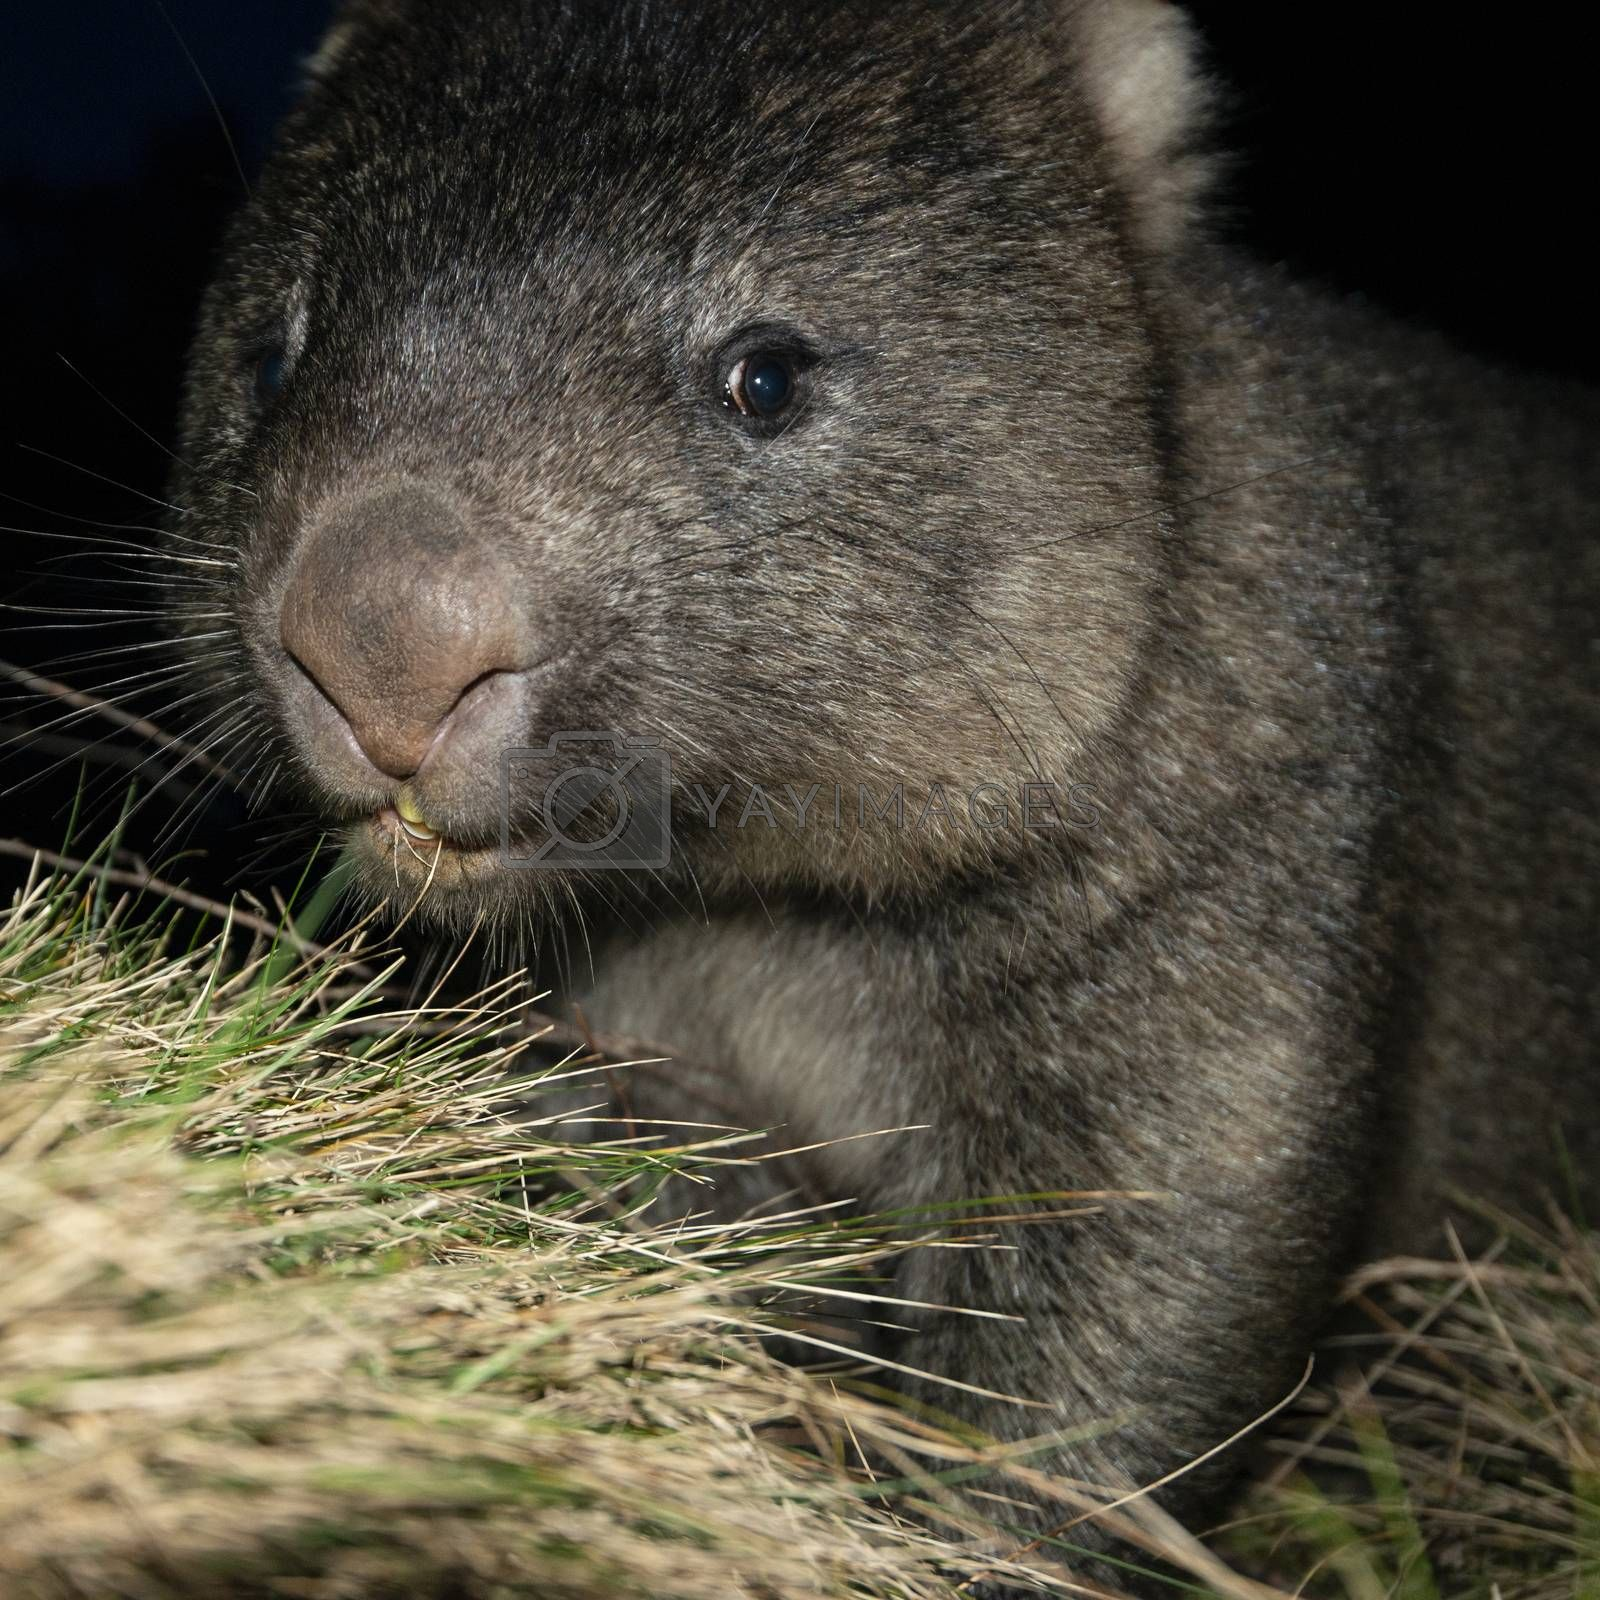 Royalty free image of Wombat at night by artistrobd